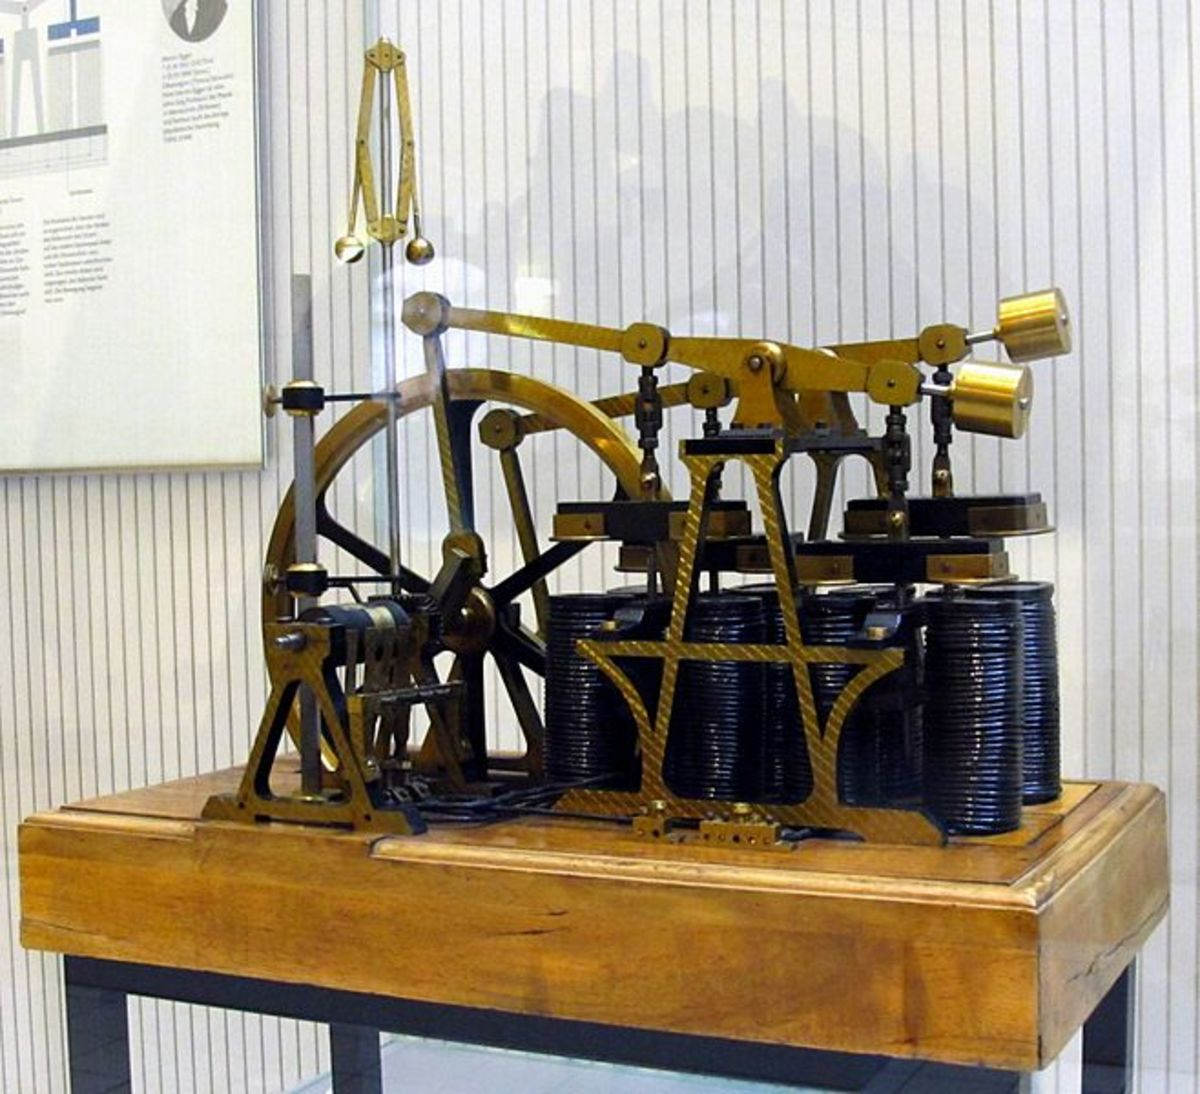 An early electric motor based on the discoveries made by Michael Faraday